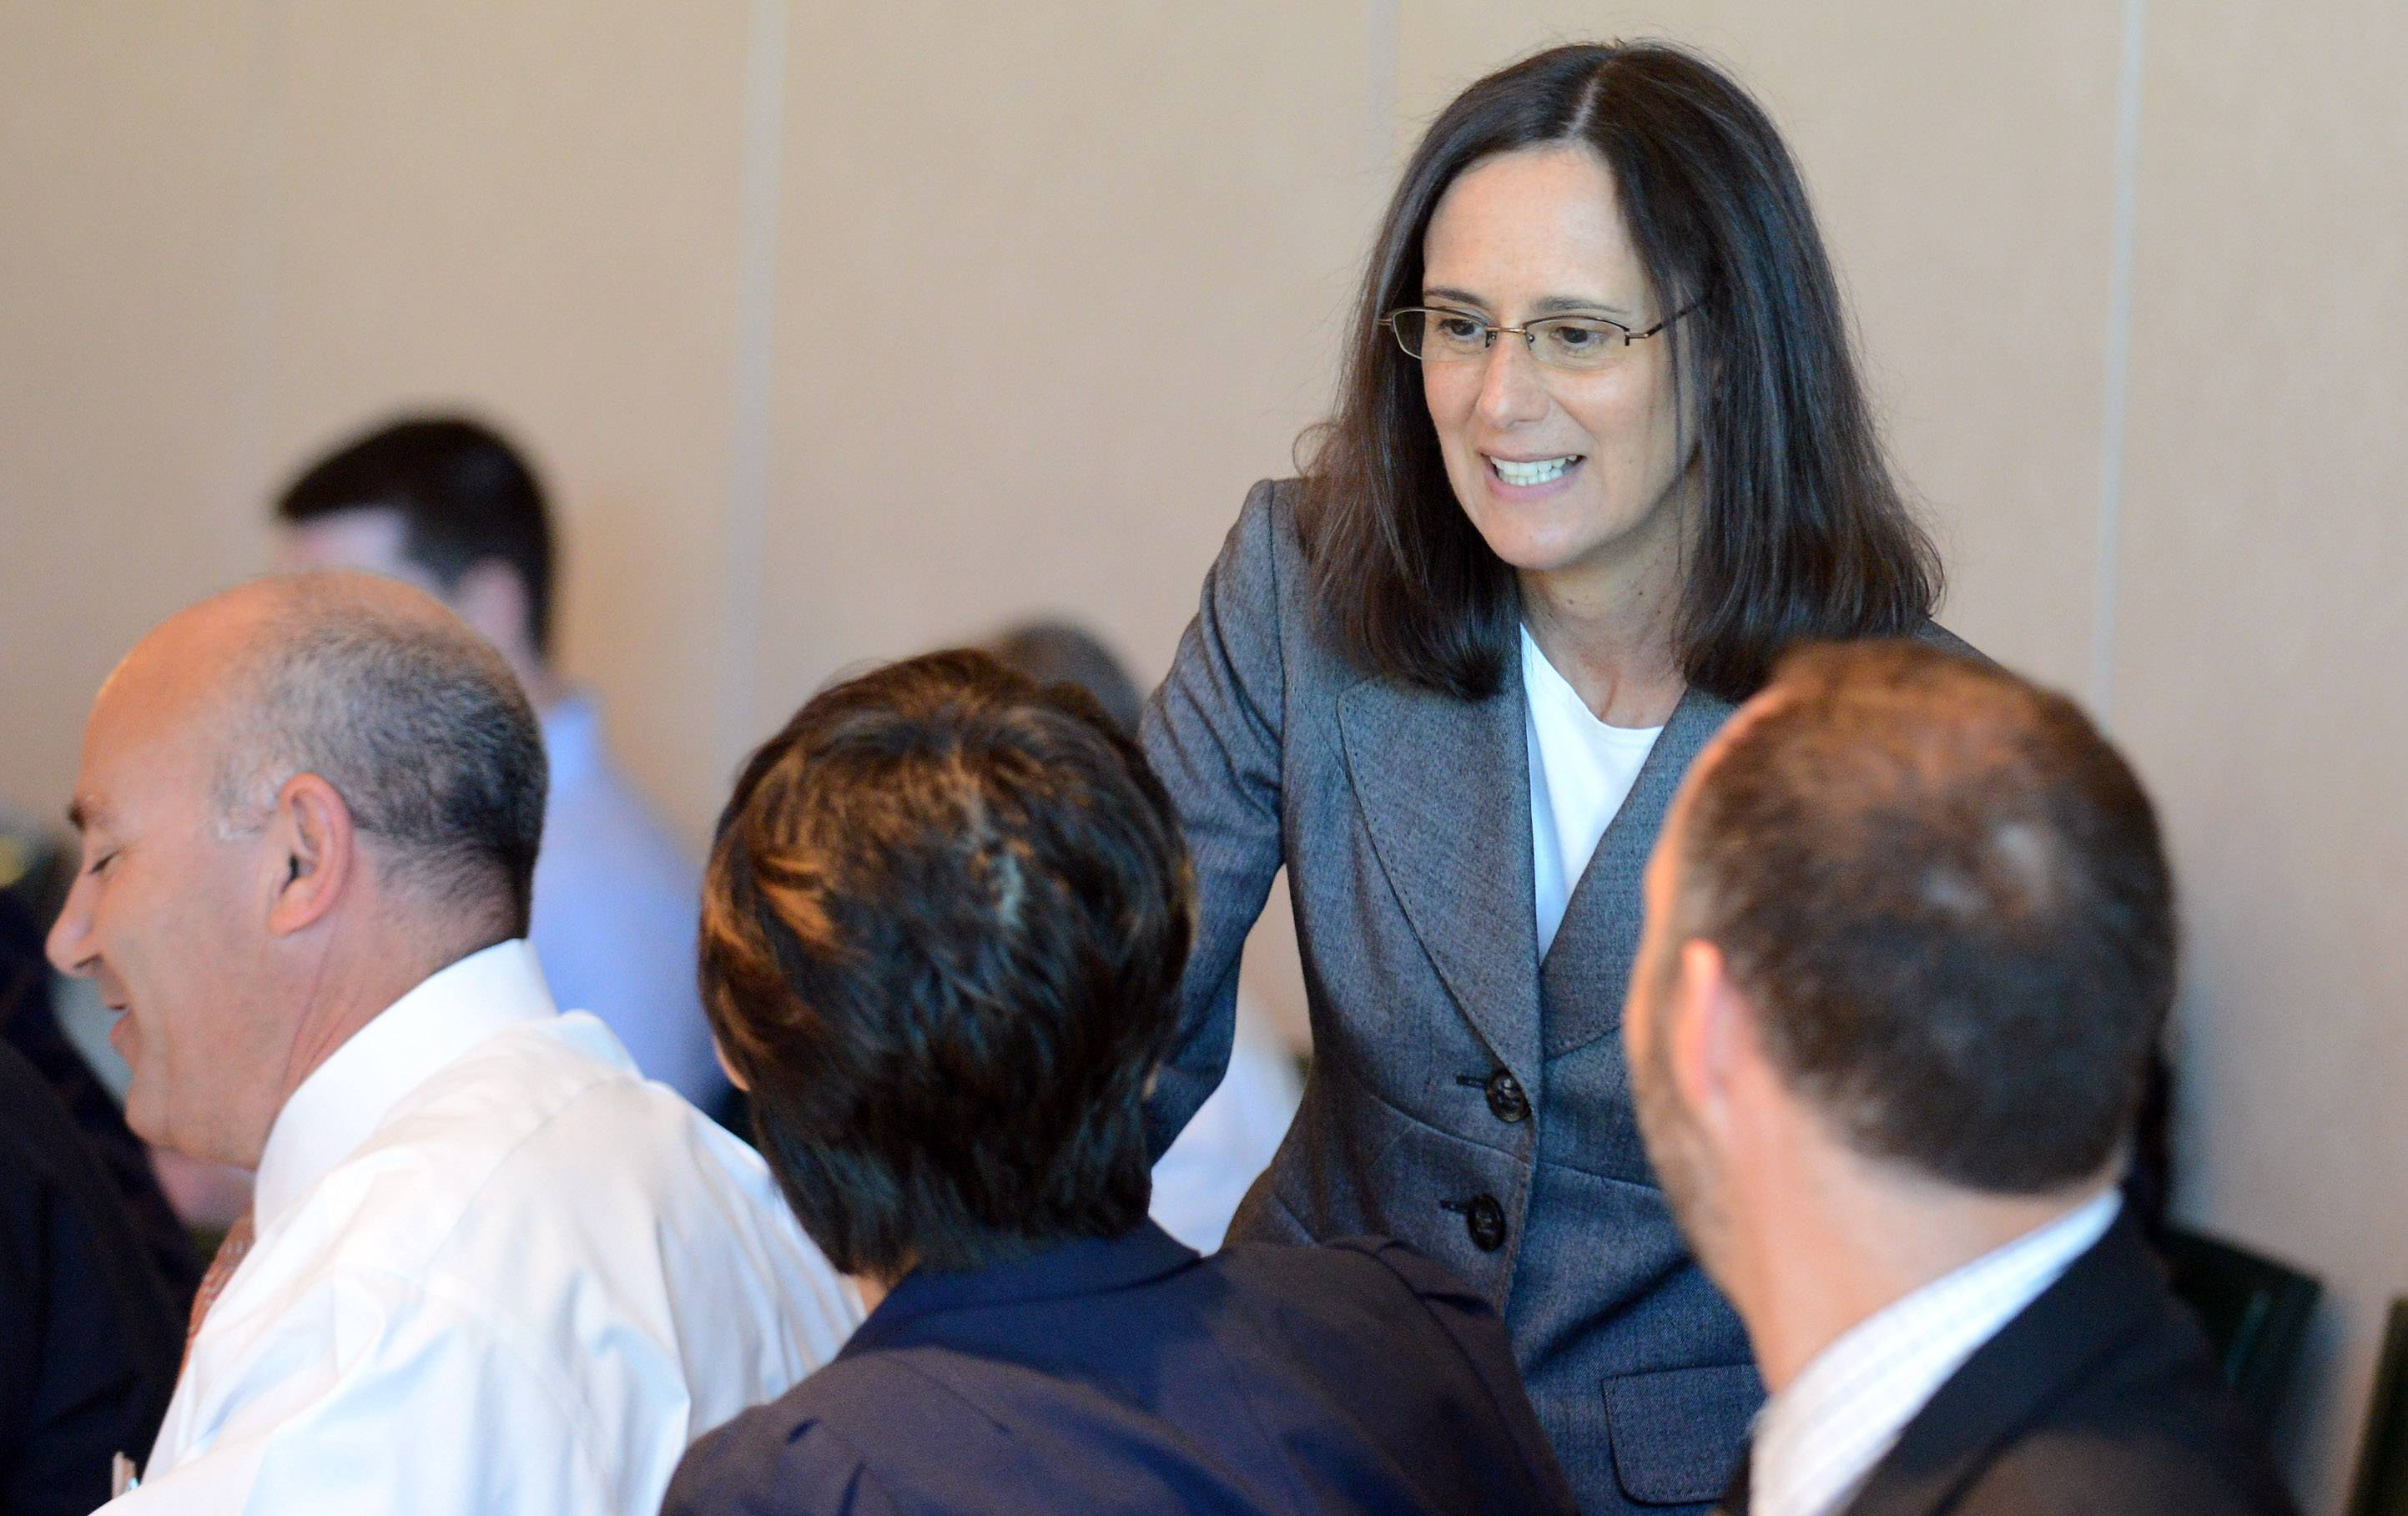 Illinois Attorney General Lisa Madigan greets those in attendance Wednesday the Centre of Elgin during discussion about how to identify and avoid major consumer scams.